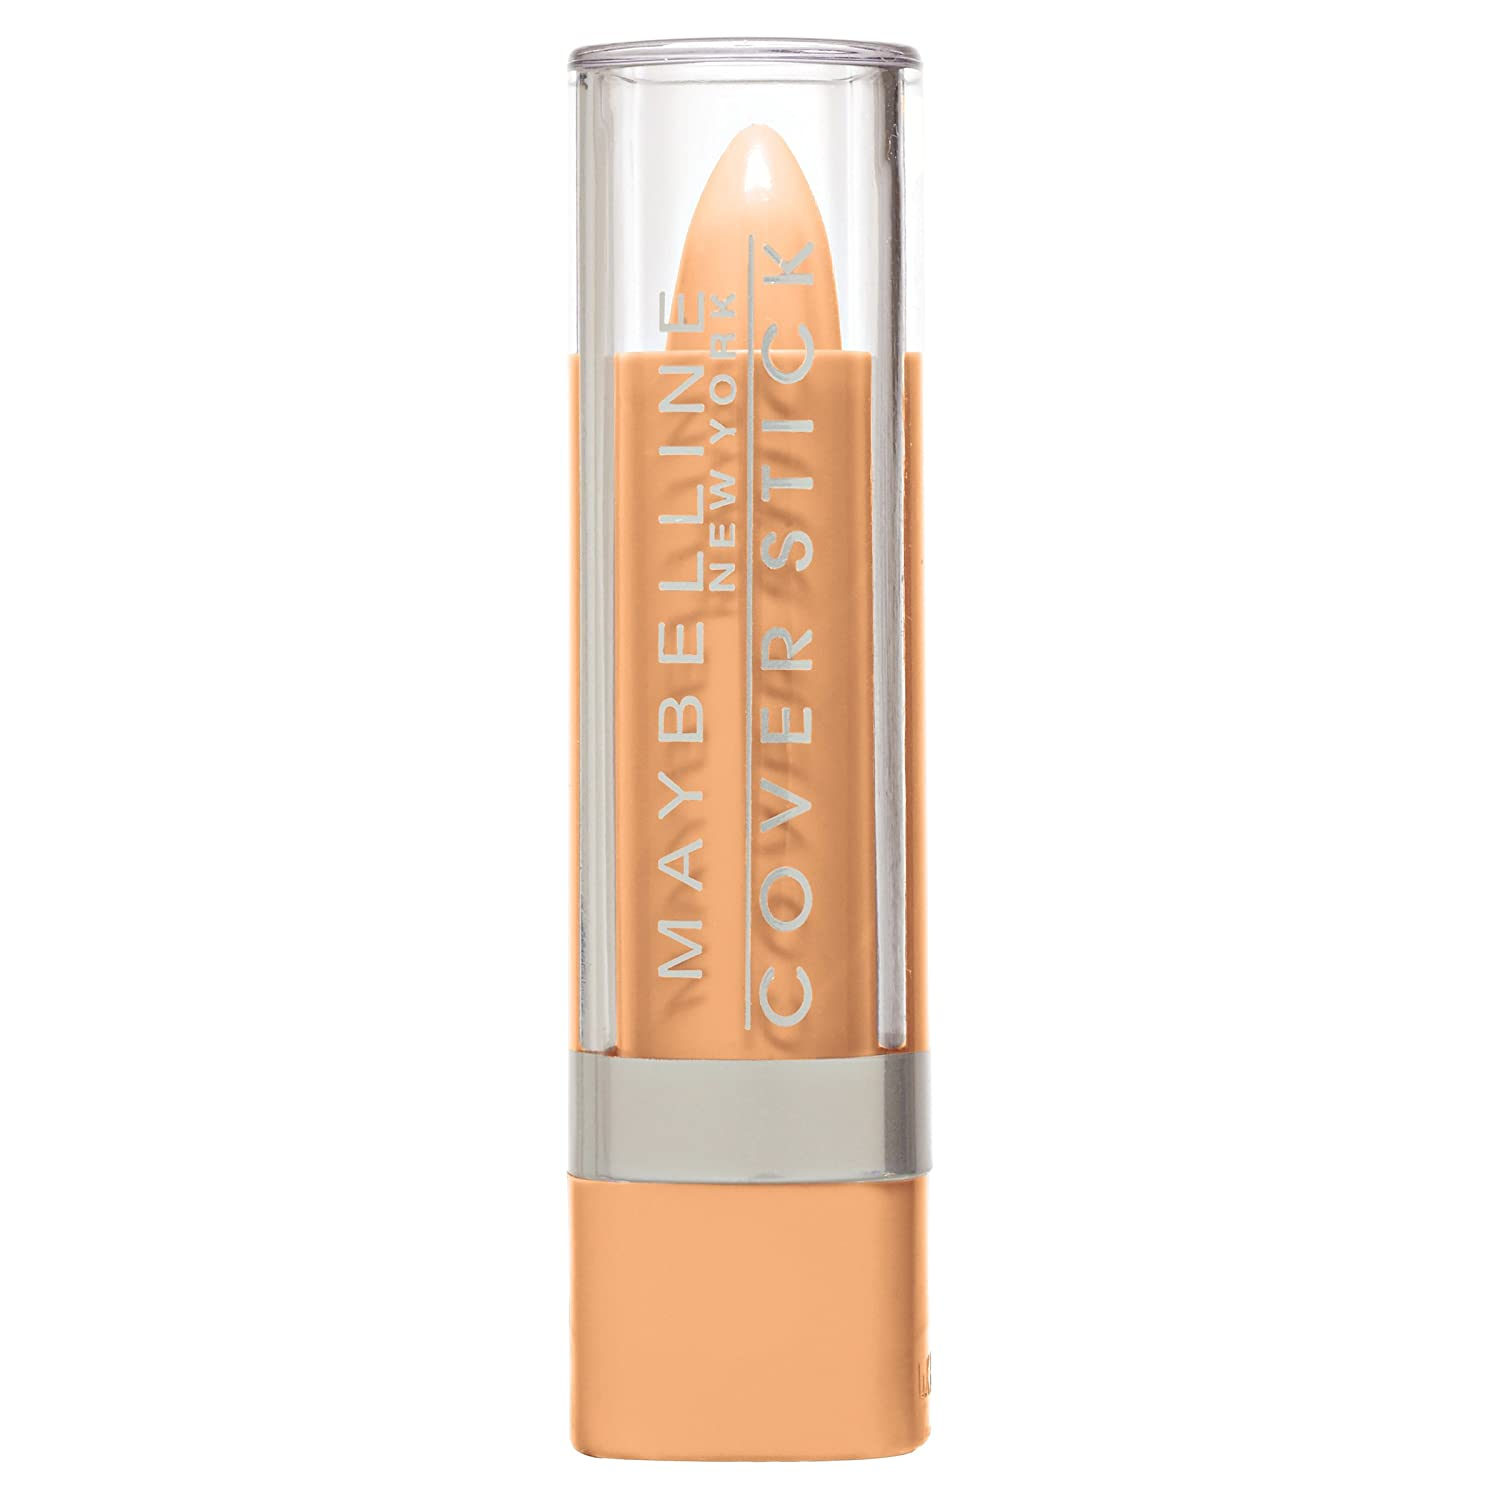 Maybelline New York Cover Stick Concealer, Medium Beige, Medium 1, 0.16 Ounce : Beauty